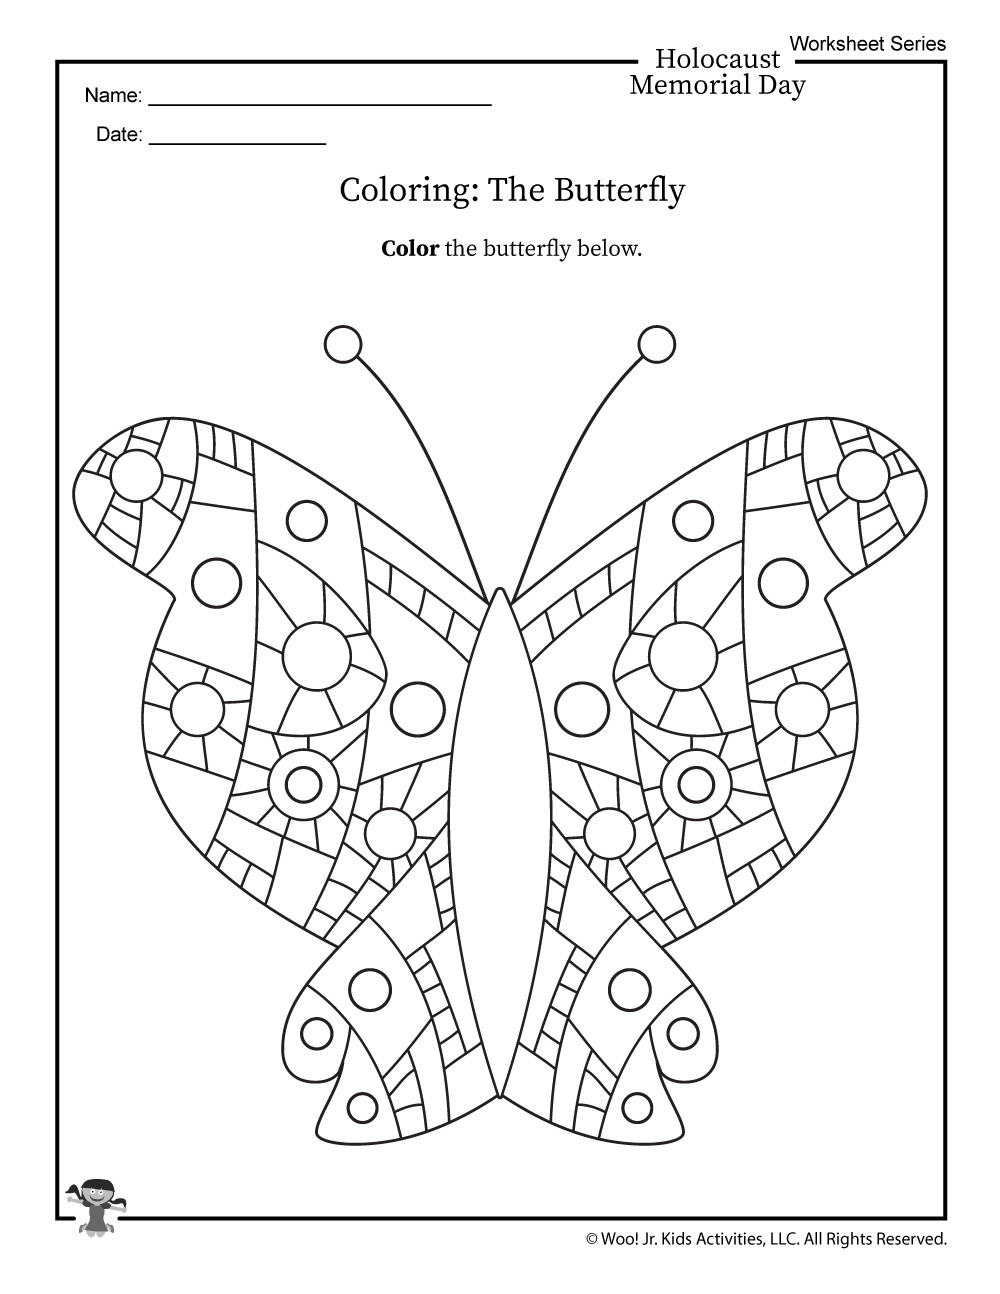 Holocaust Butterfly Coloring Page | Woo! Jr  Kids Activities